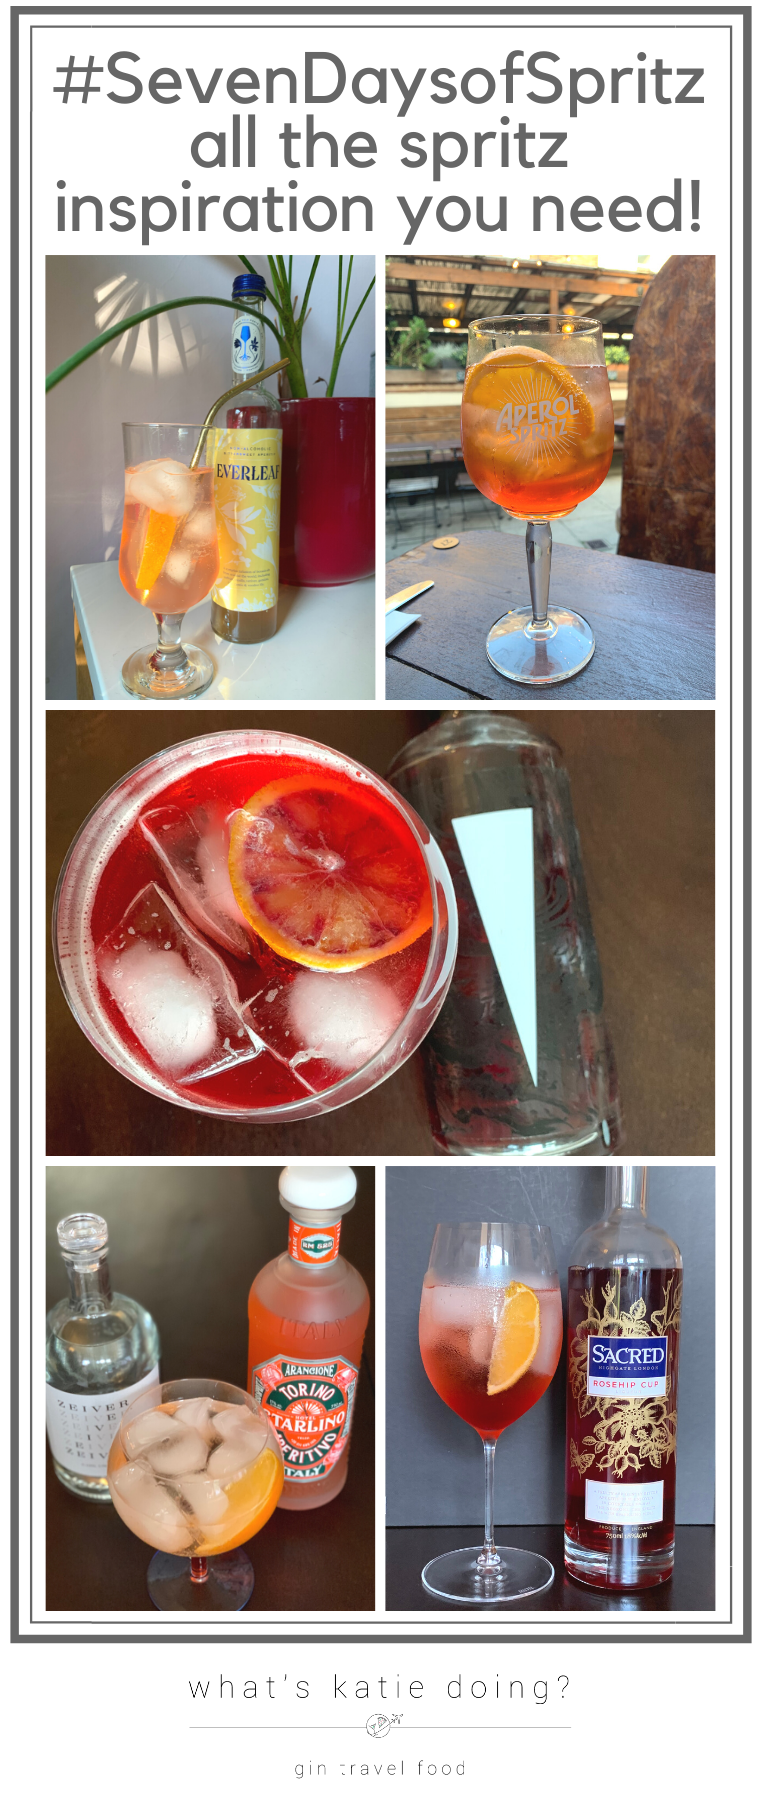 Get inspired to make and drink spritz cocktails this summer